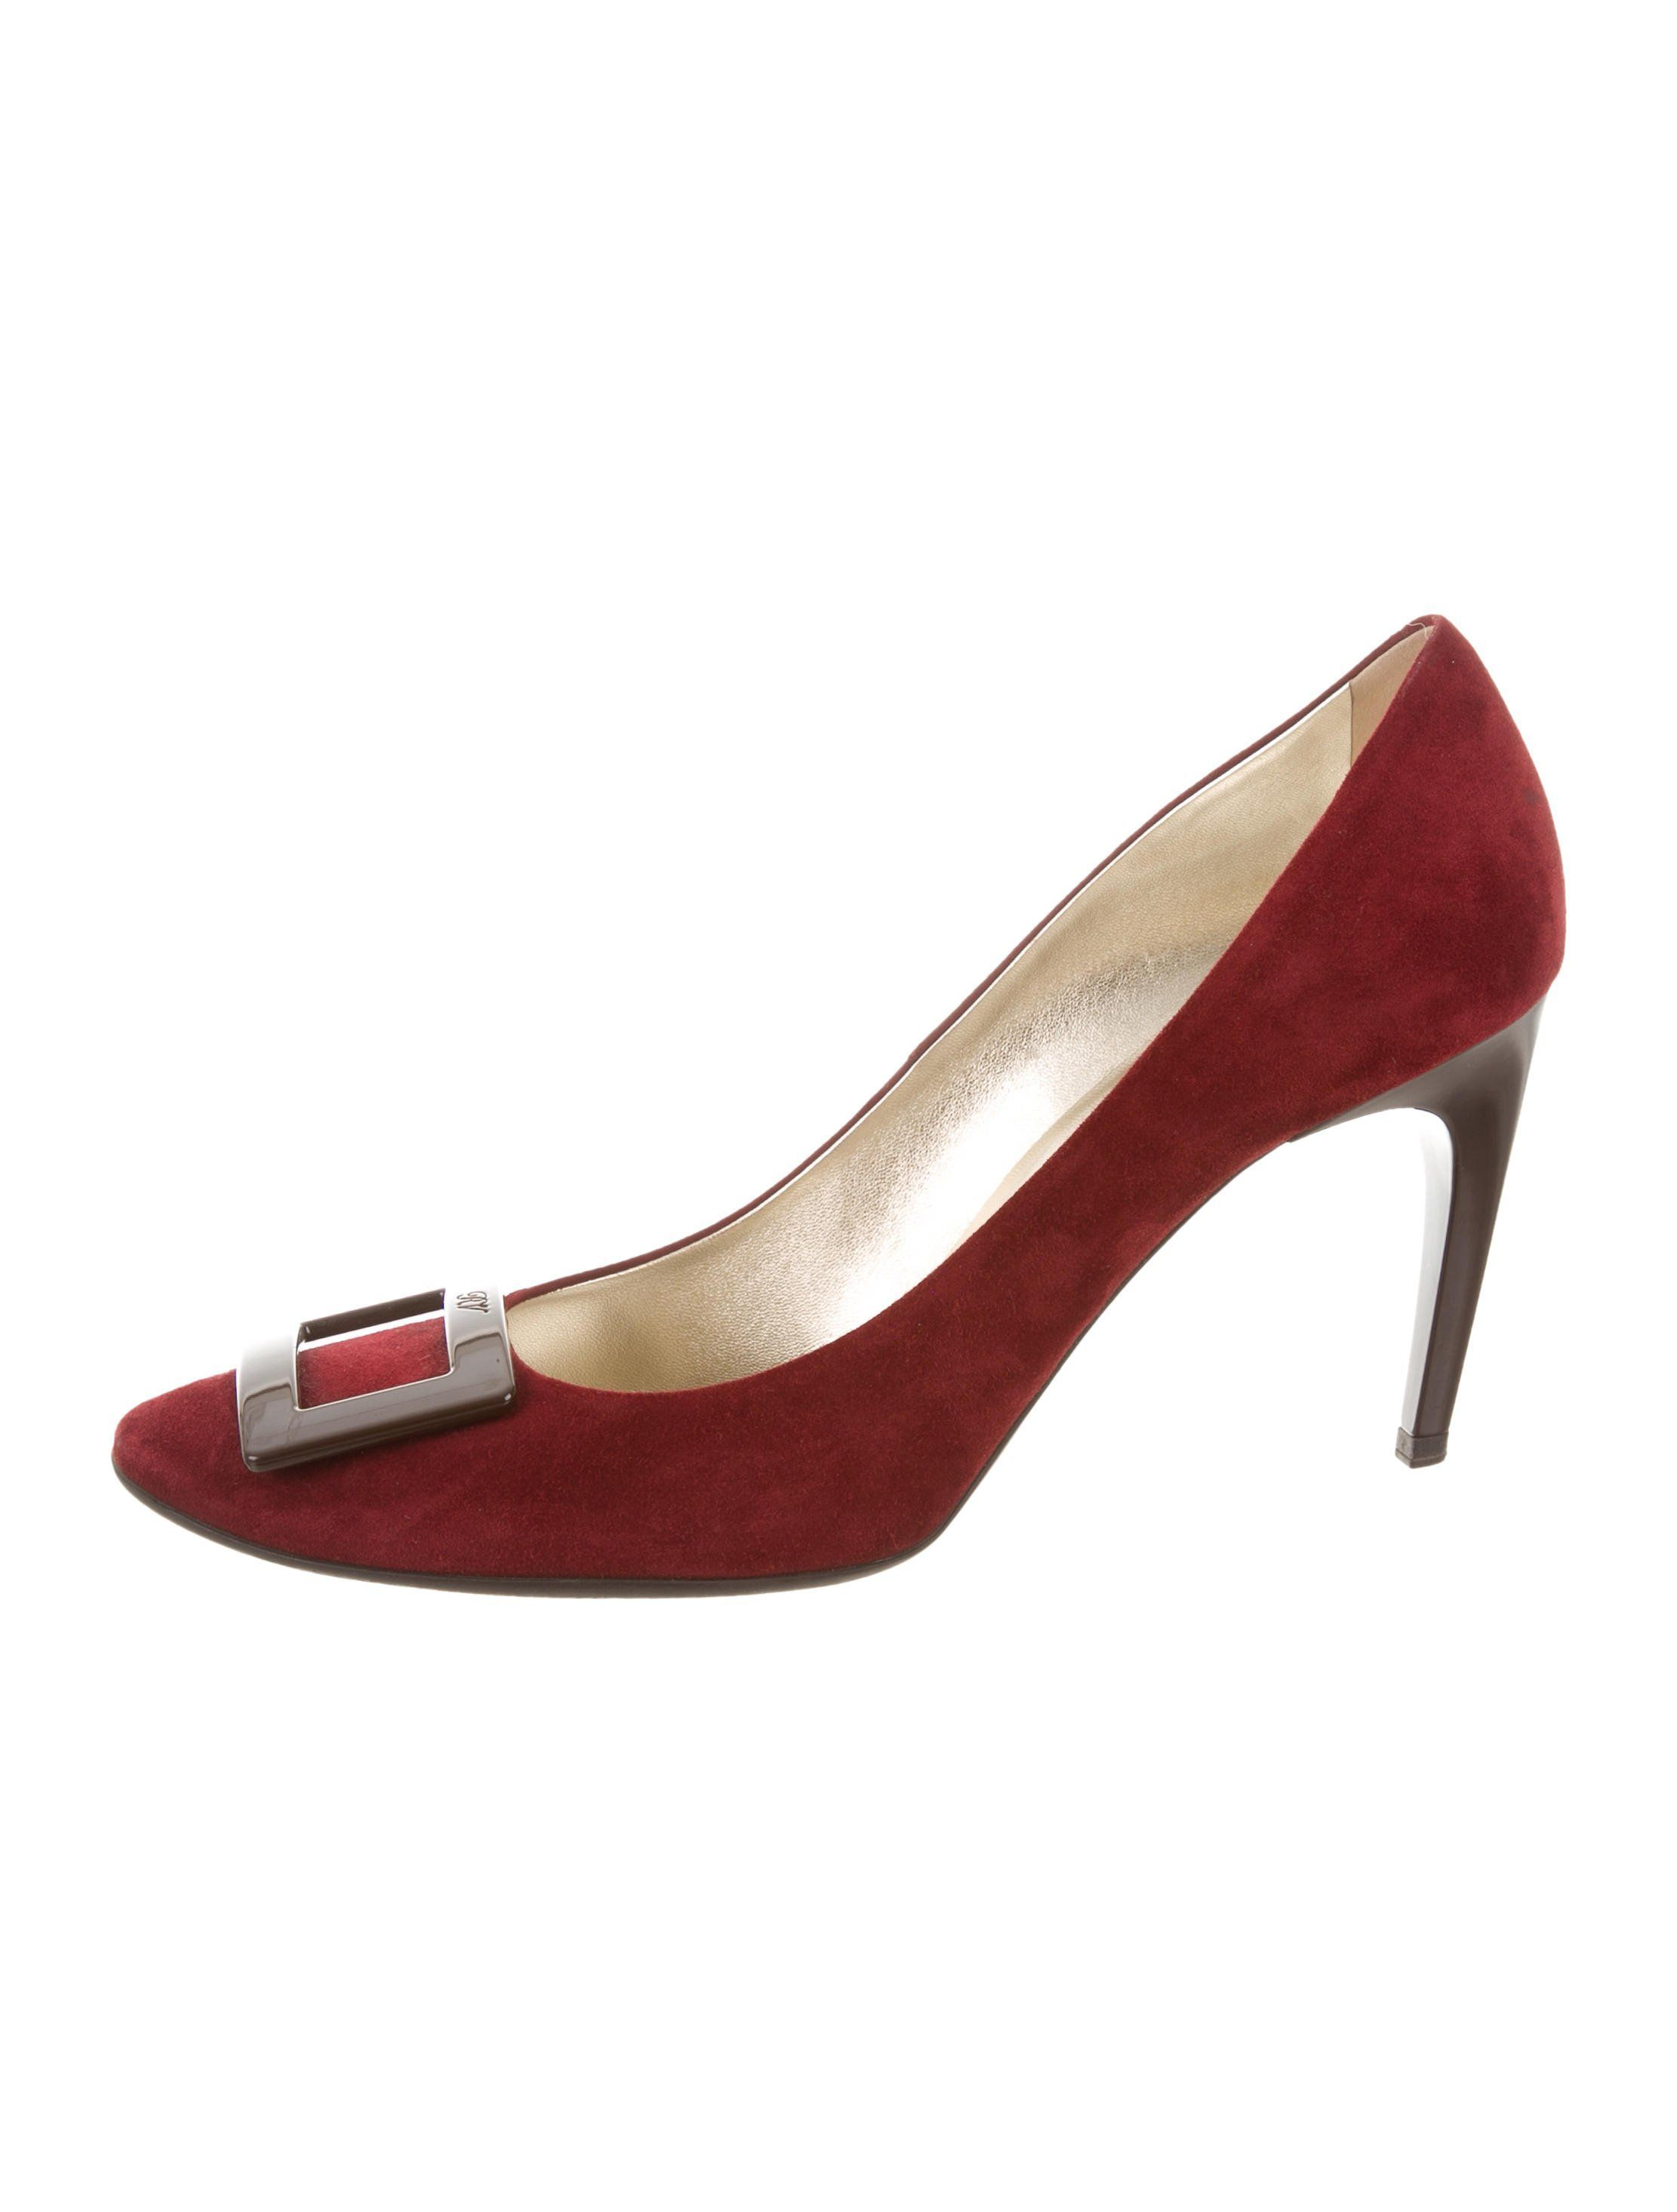 e653559dd136 Burgundy suede Roger Vivier round-toe pumps with gold-tone logo engraved  buckle accents at tops and covered heels.